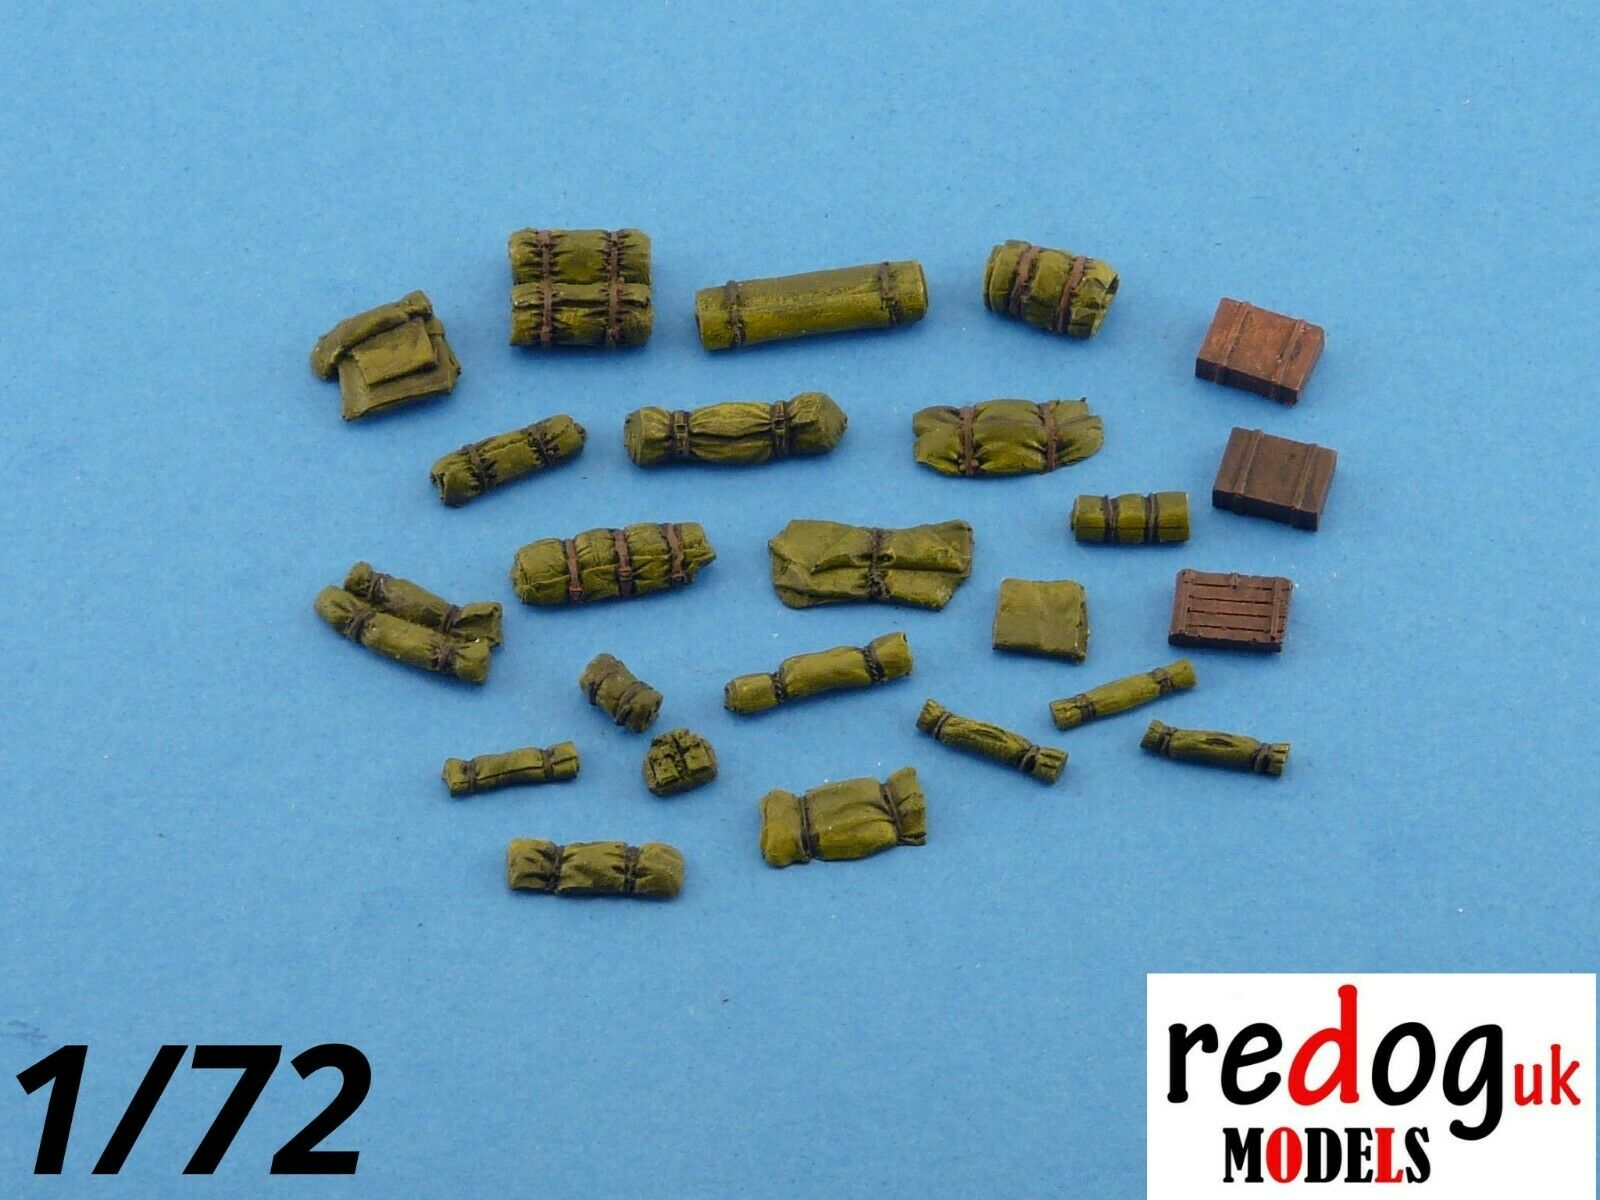 1:72 or 1:76 -  Military Scale Model Stowage Diorama Accessories Kit - redoguk